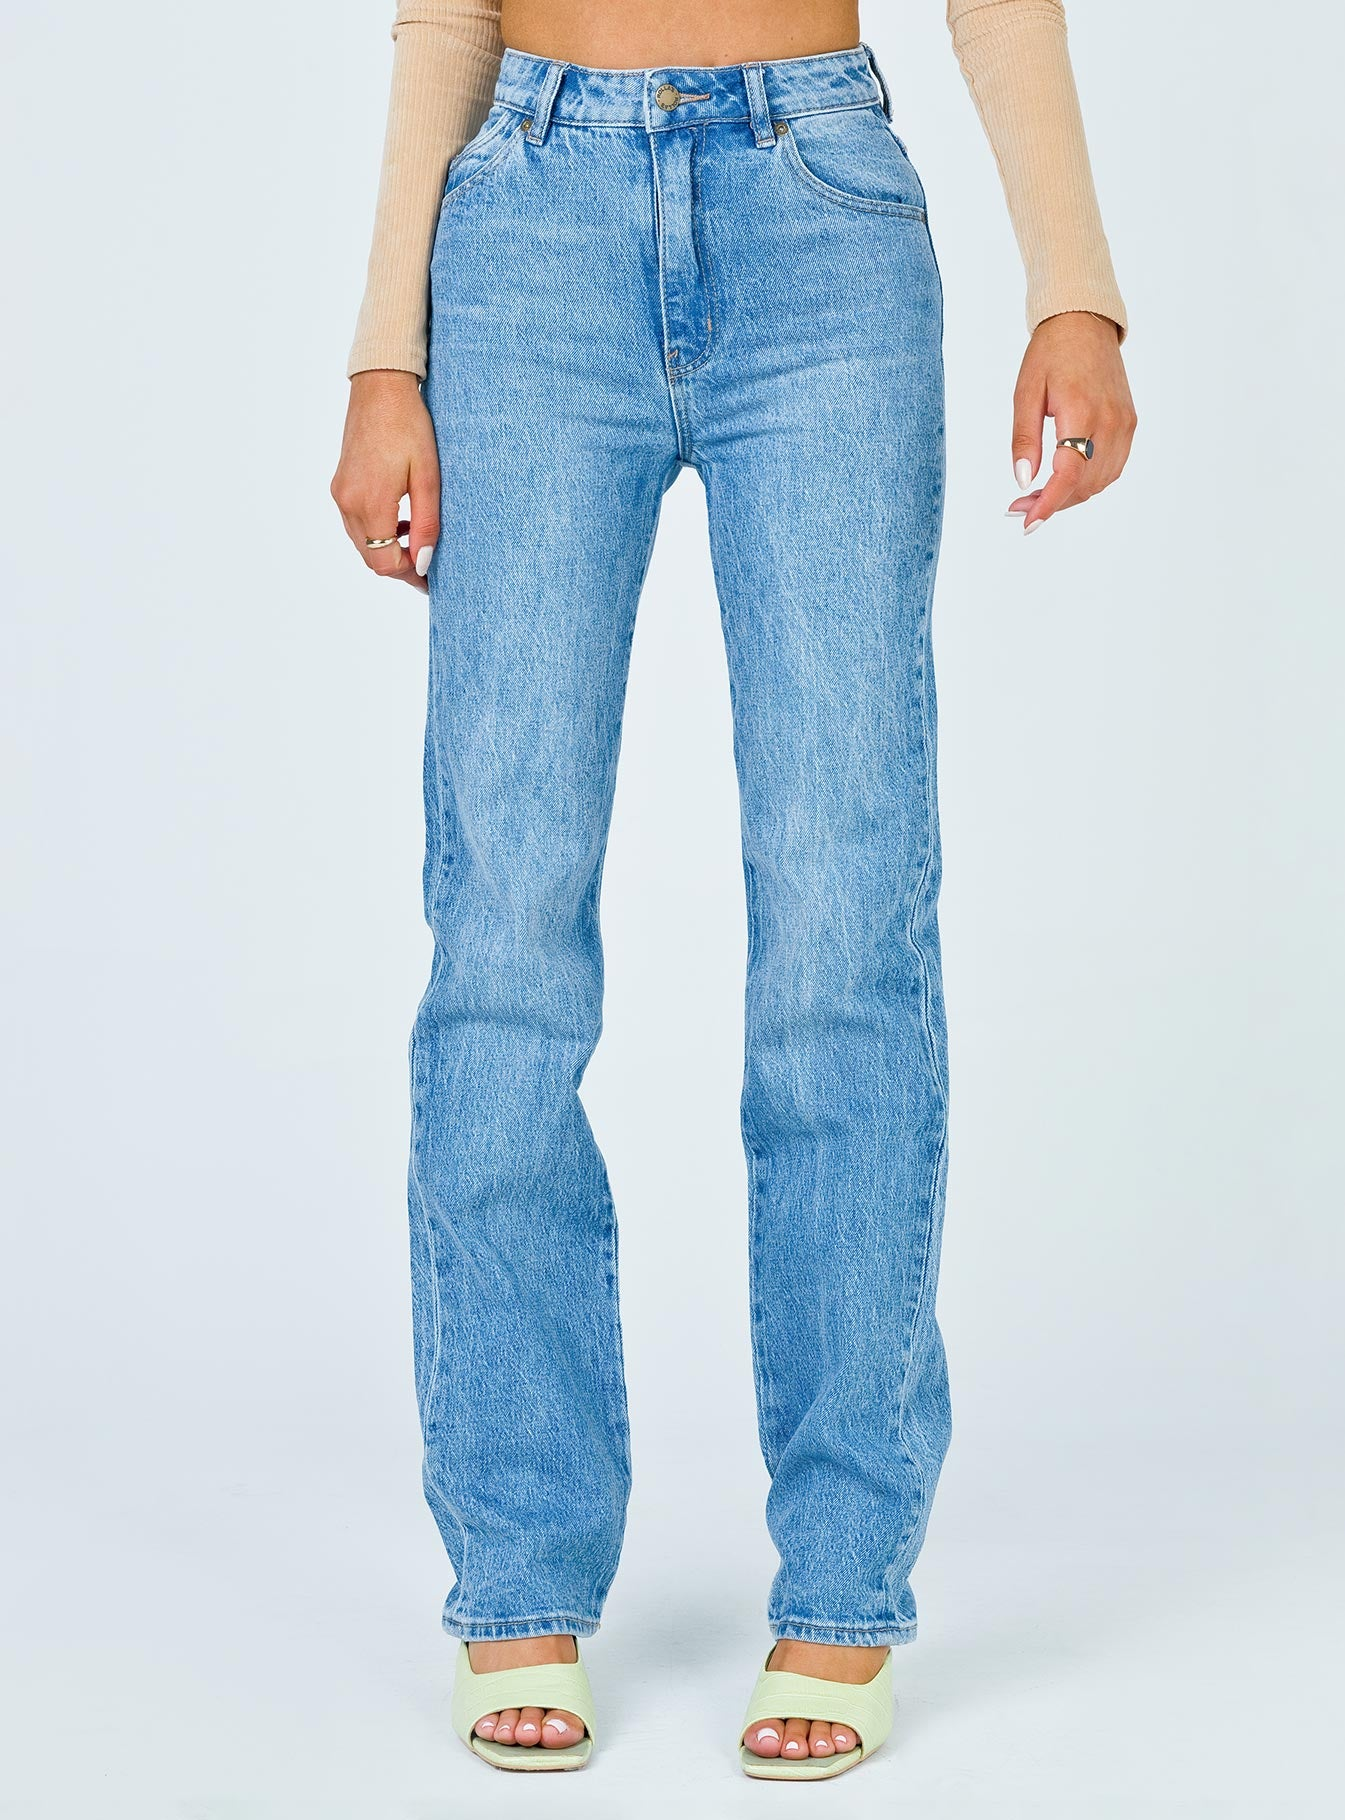 Rolla's Original Straight Long Brad Blue Jeans